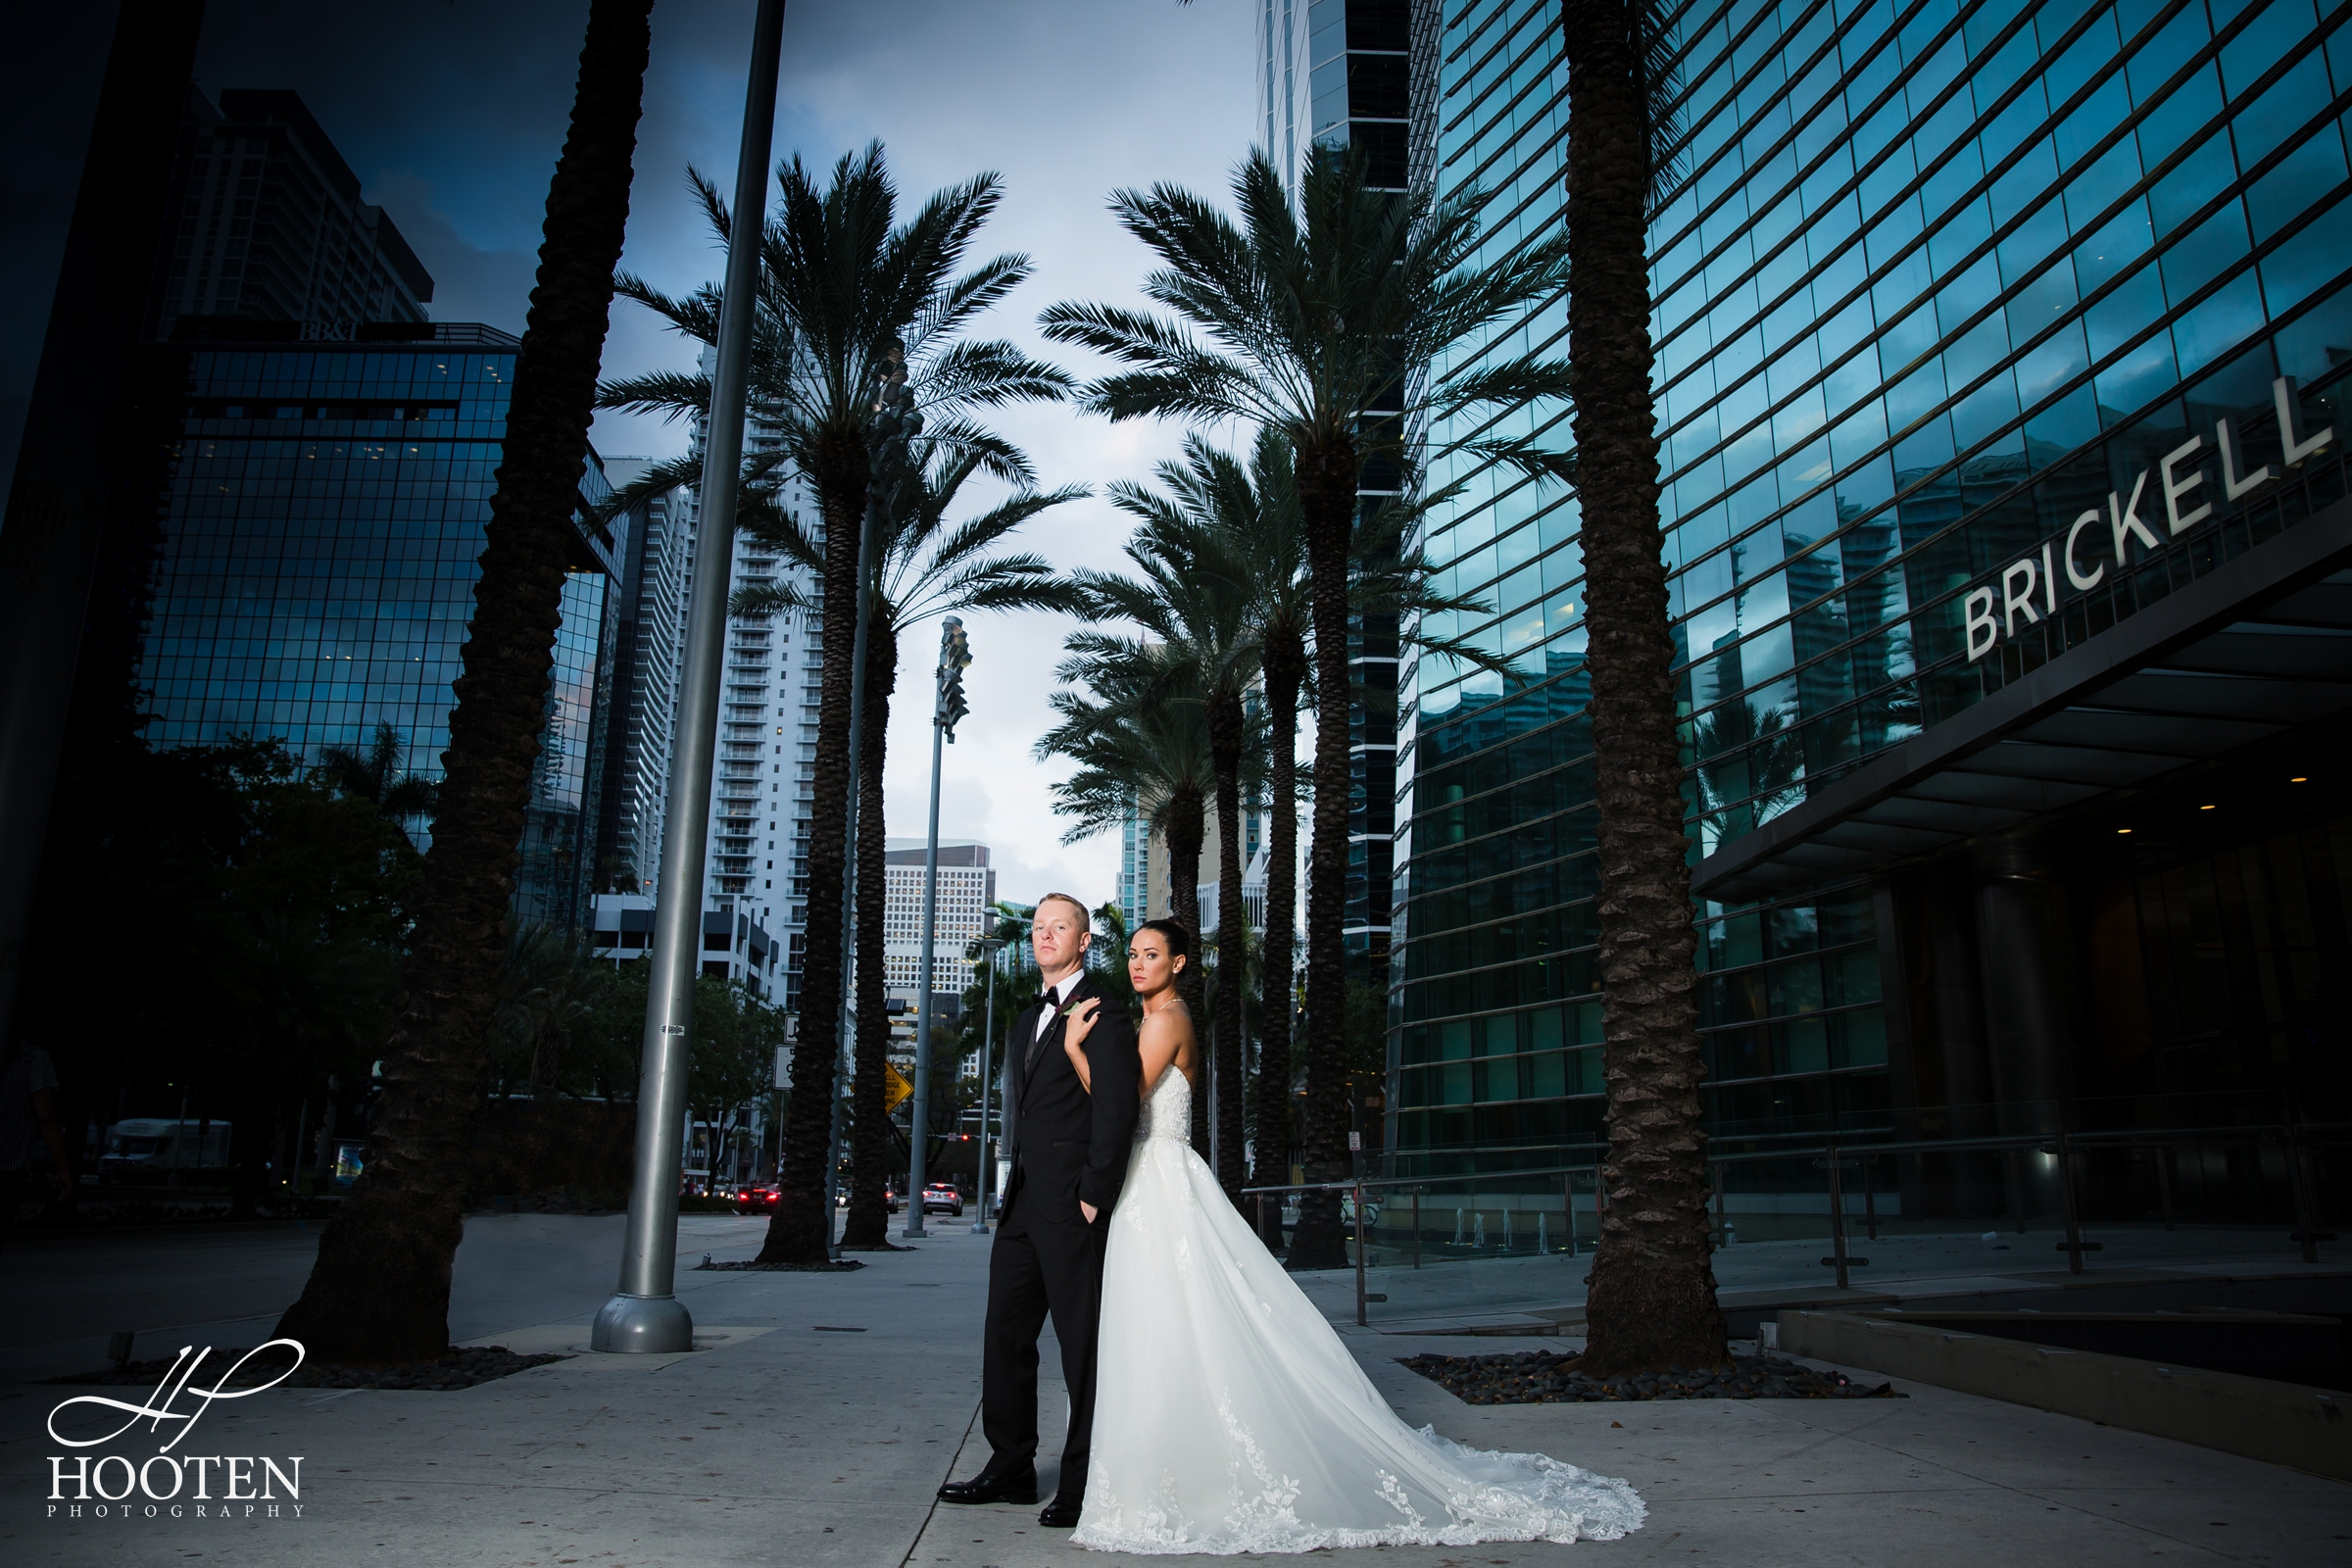 065.Conrad-Miami-Hotel-Wedding-Hooten-Photography.jpg